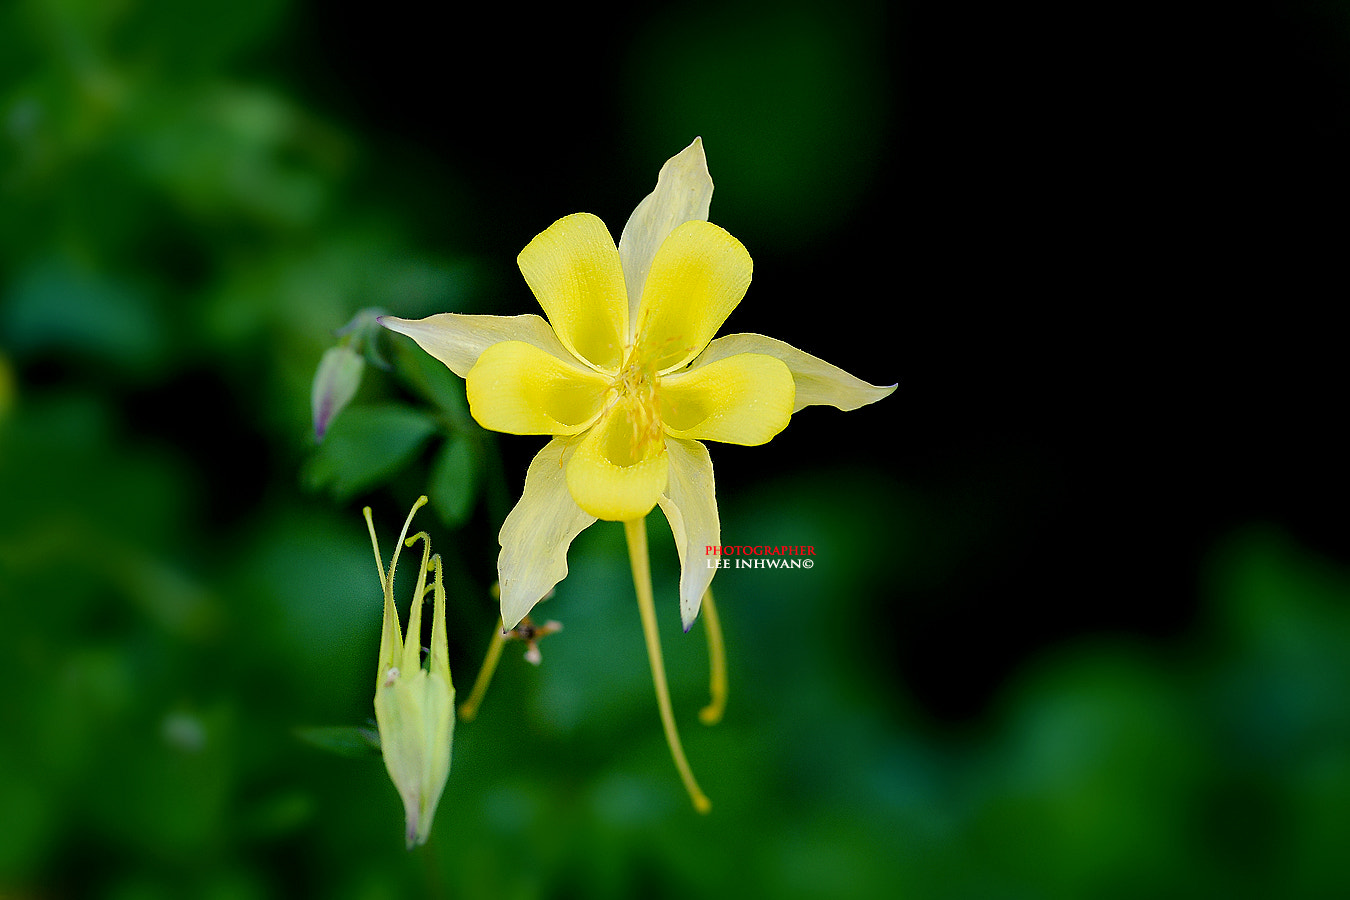 Photograph Yellow columbine by LEE INHWAN on 500px